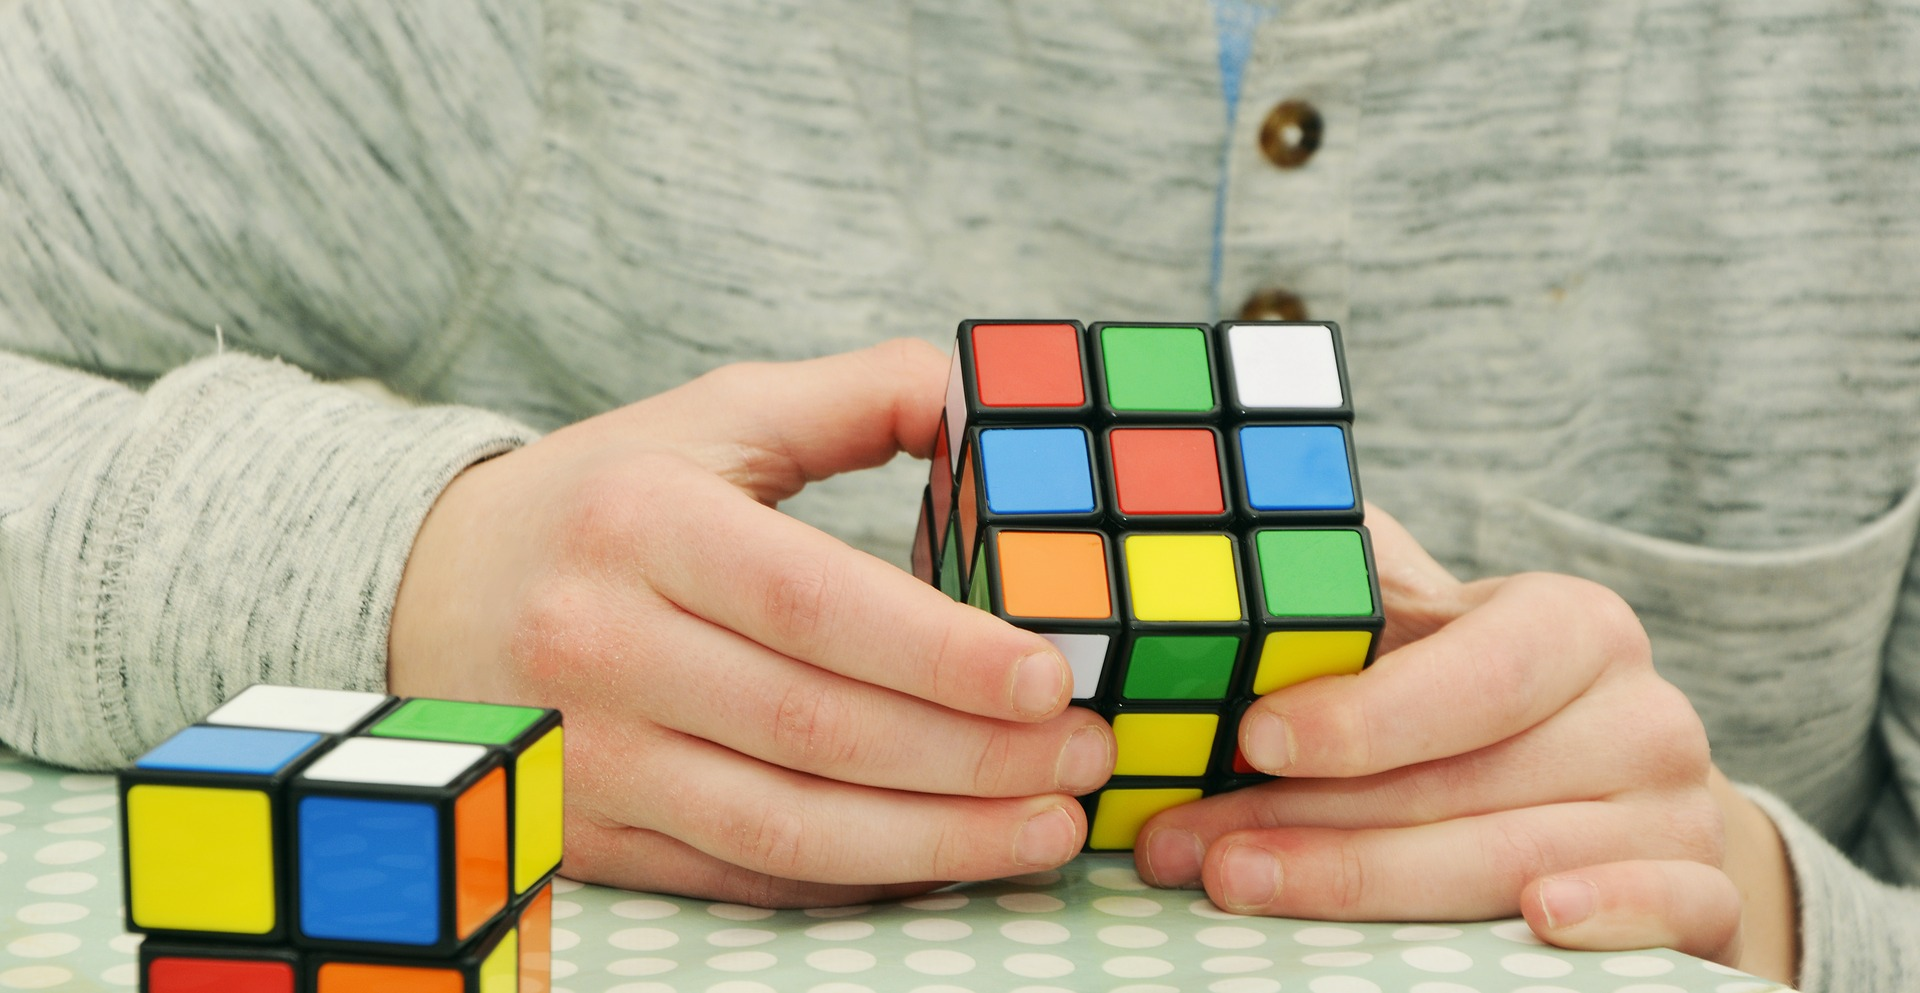 """Haber"" conjugation in Spanish — a person playing with a Rubik's cube"